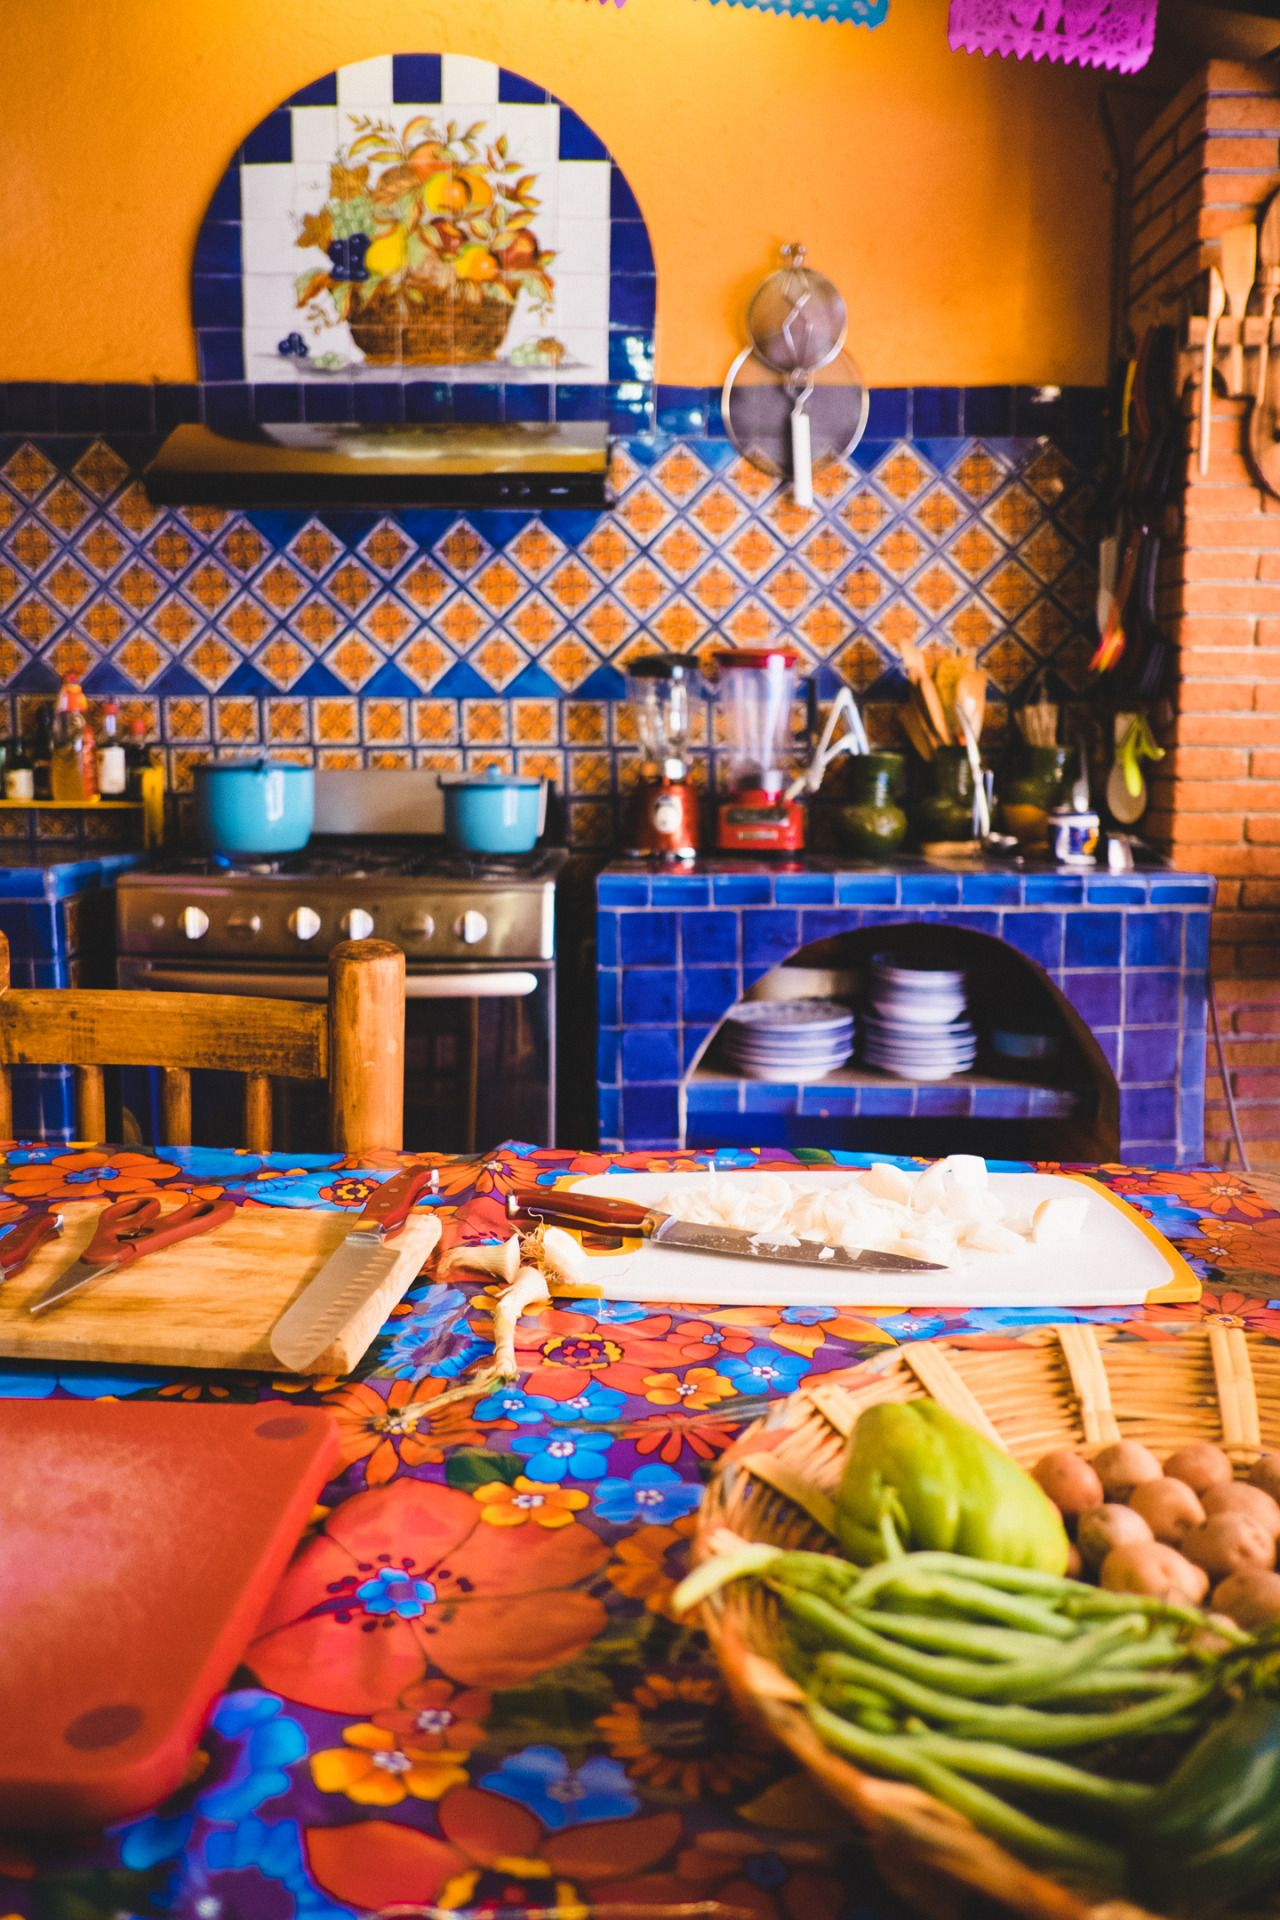 40ab25c2b2504837102400d734a04627 Ideas For A Small Mexican Hacienda Kitchen on ideas for fireplace, ideas for a powder room, ideas for a small balcony, ideas for closet, ideas for offices, ideas for a mini bar, ideas for a home, ideas for dining room, ideas for a desk, ideas for a small foyer, ideas for bedroom, ideas for refrigerator, ideas for breakfast room, ideas for family room, ideas for a small sunroom, ideas for a small business, ideas for a sitting room, ideas for a teen room, ideas for a small entryway, ideas for living space,